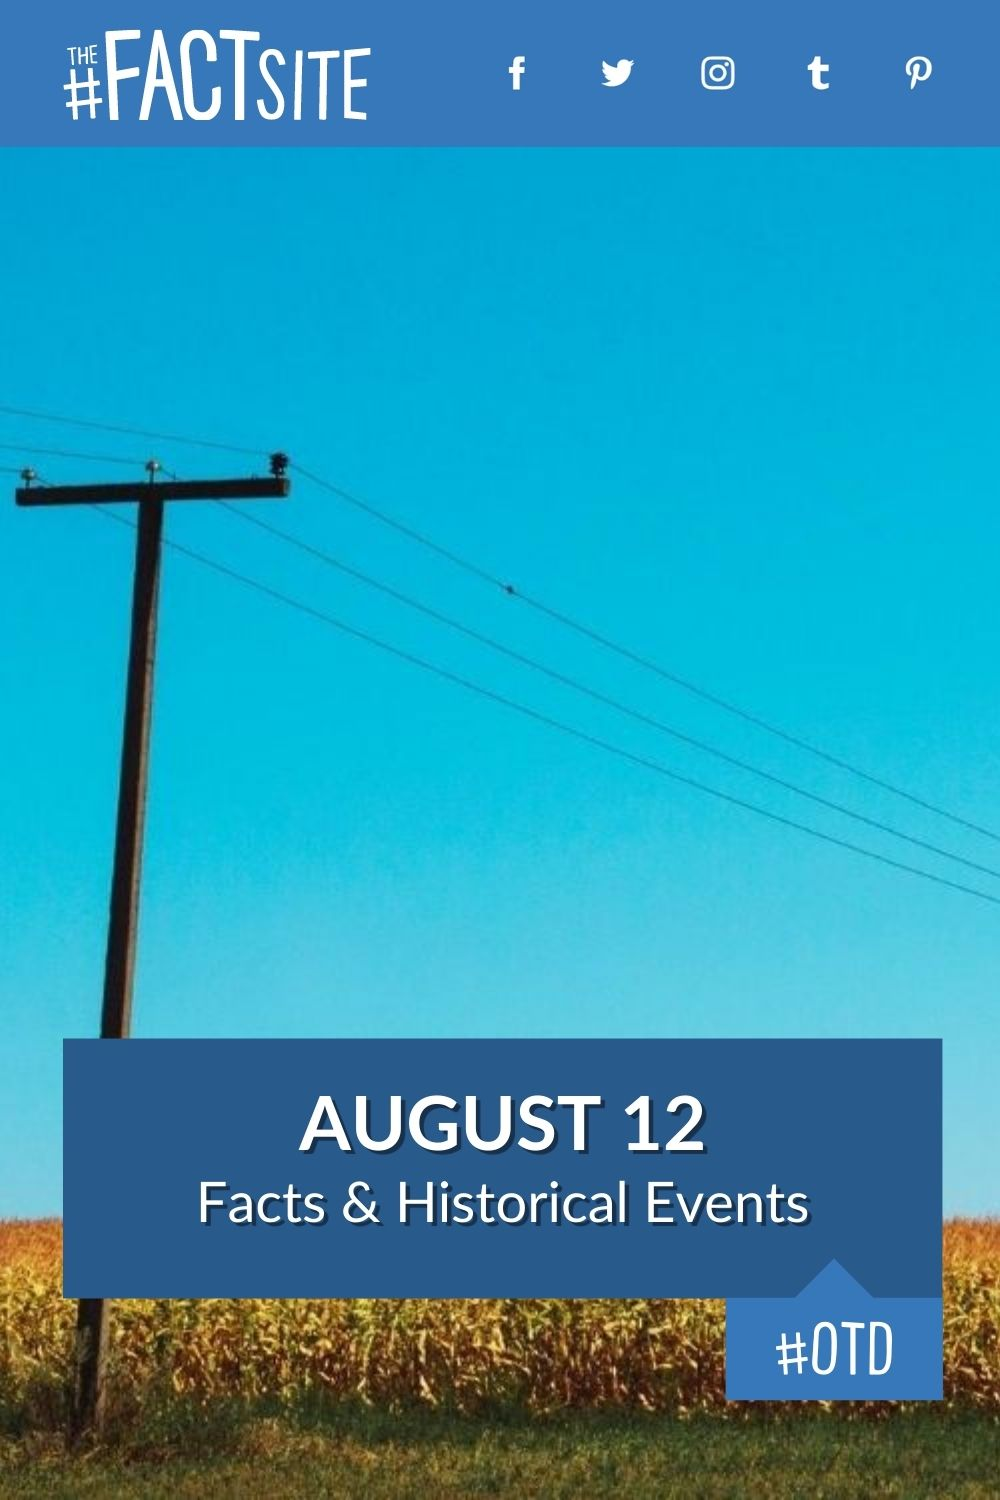 Facts & Historic Events That Happened on August 12